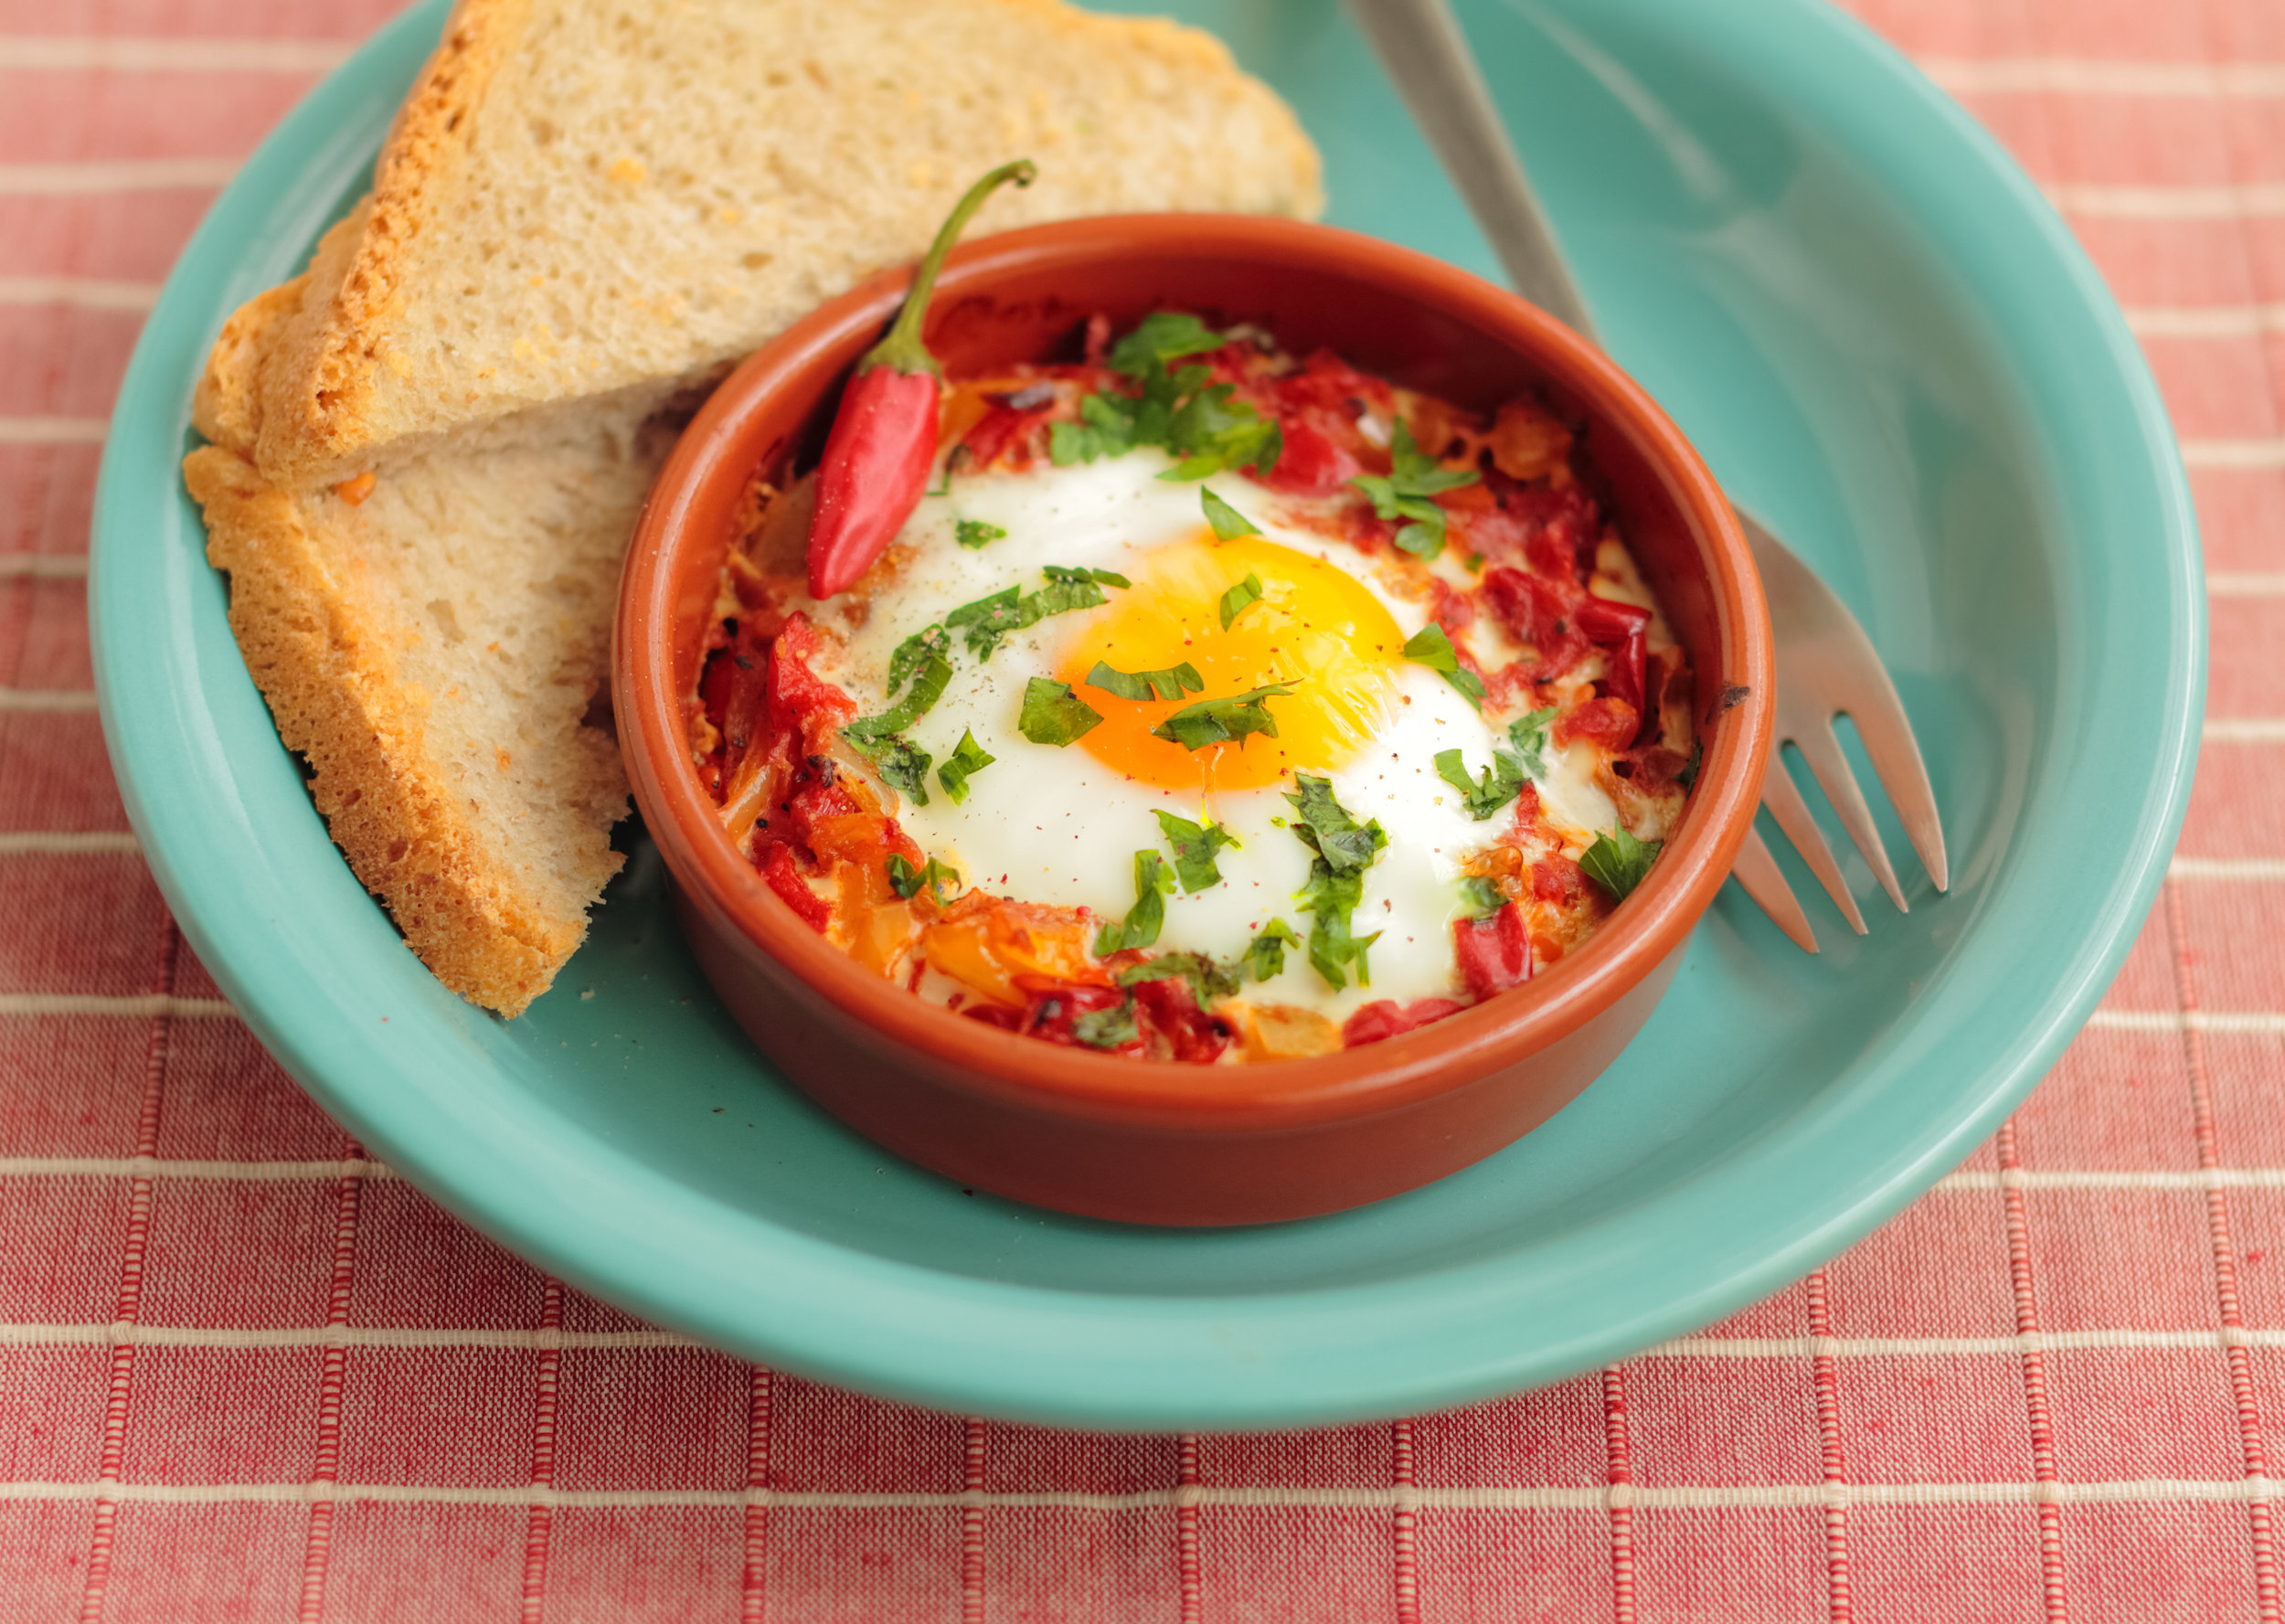 Online Personal Trainer Recipes - Aztec Baked Eggs.jpg